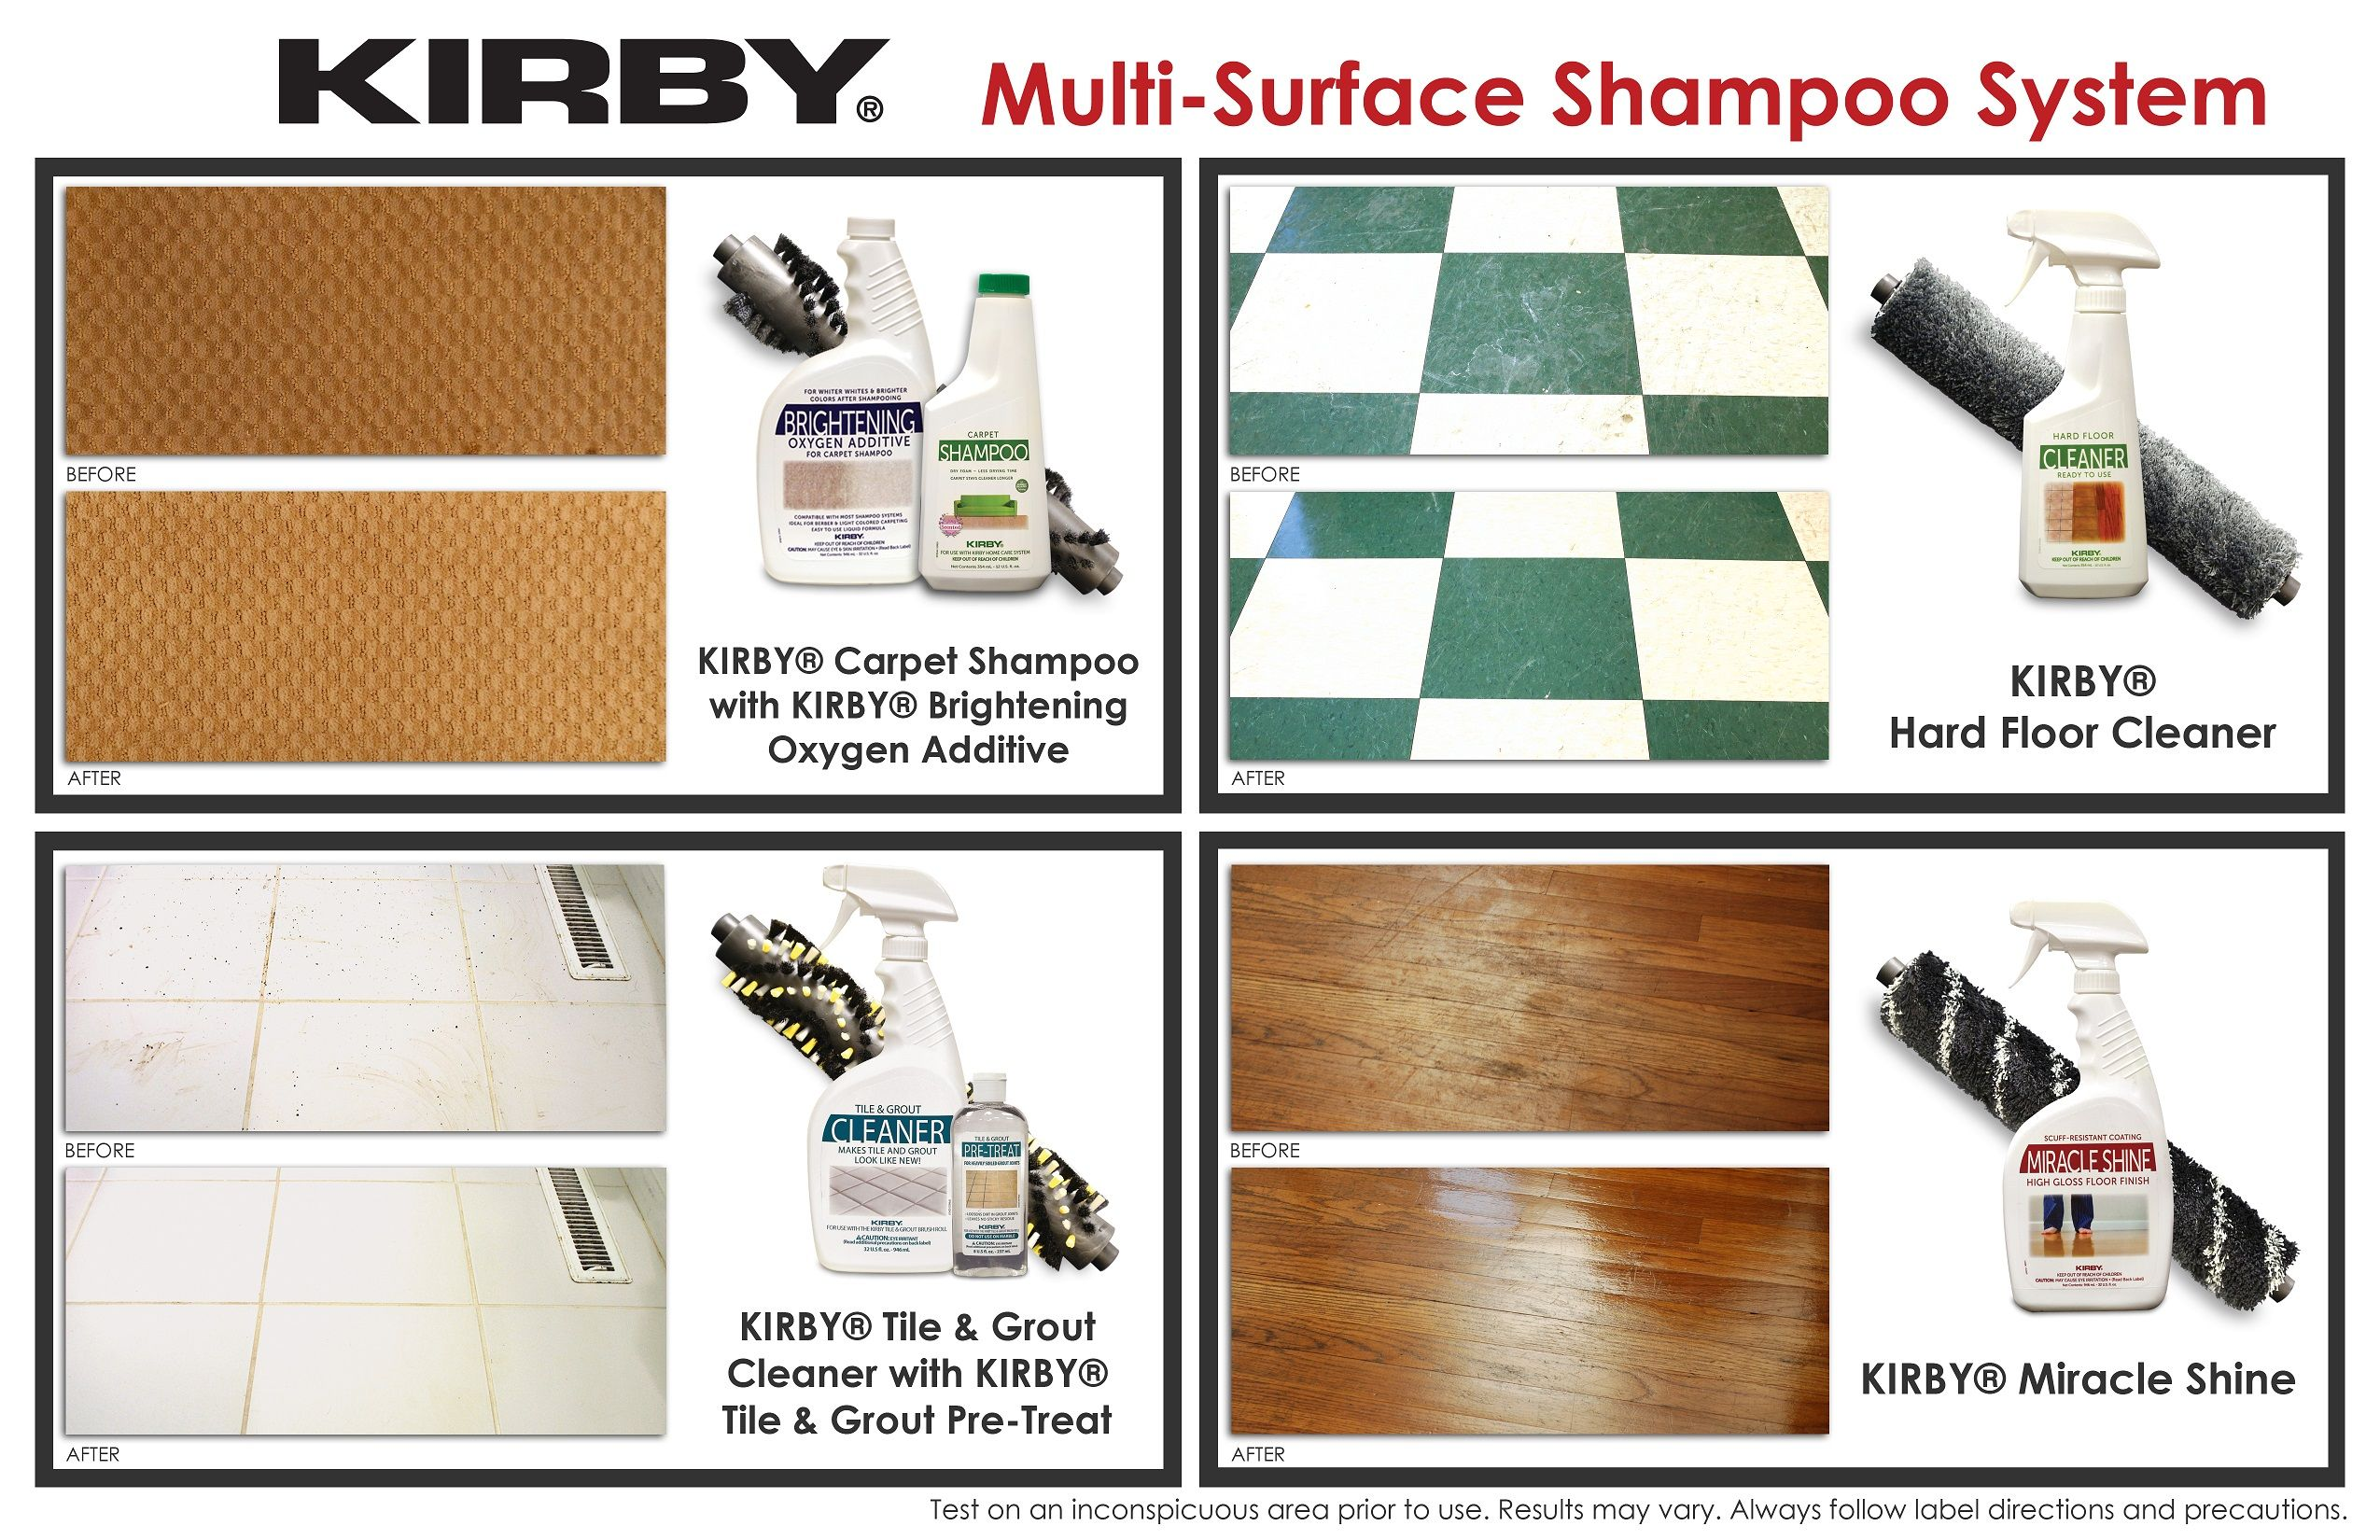 Pin By Mg Distributing On Kirby Avalir Kirby Carpet Shampoo Surface Shampoo Tile Grout Cleaner